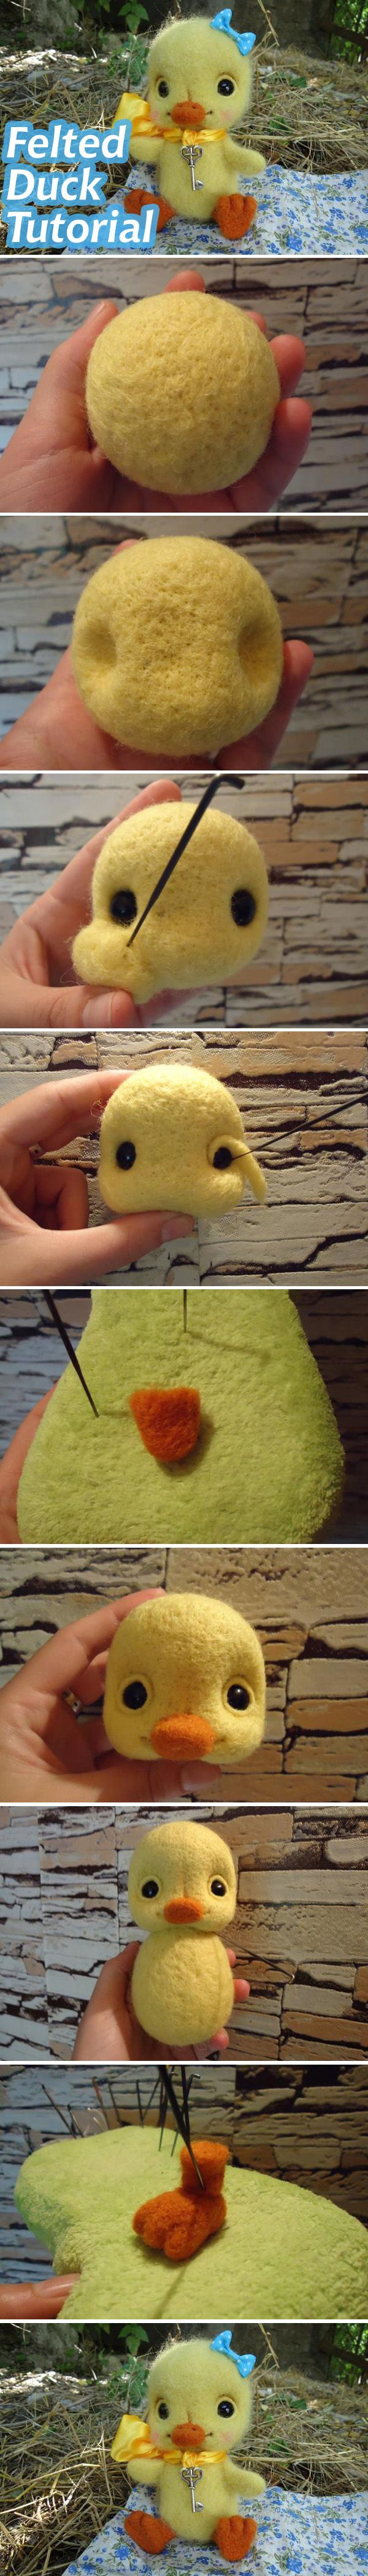 Felted Duck Tutorial